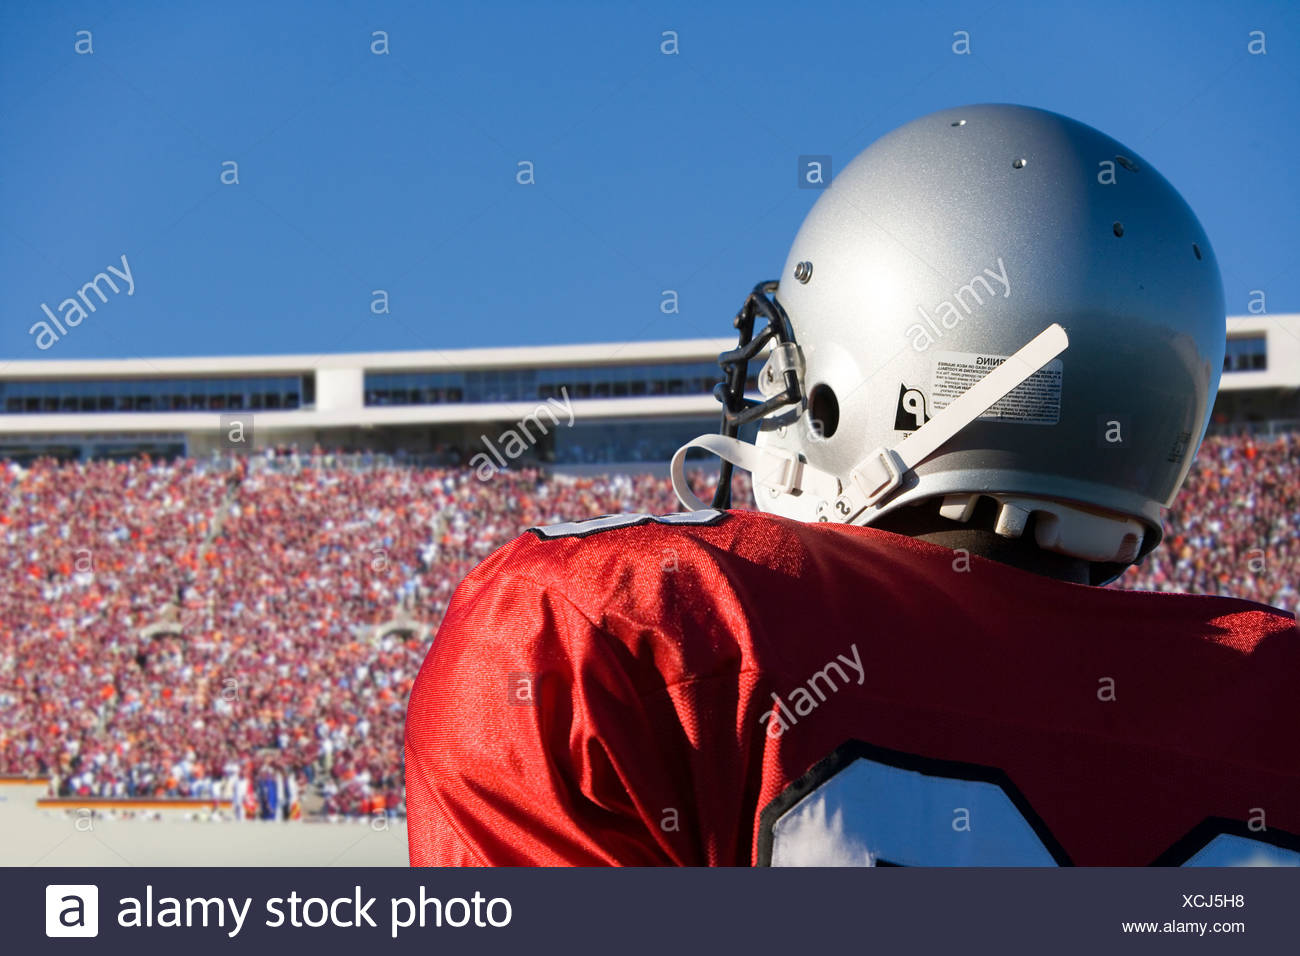 Football player looking at crowd in stadium - Stock Image